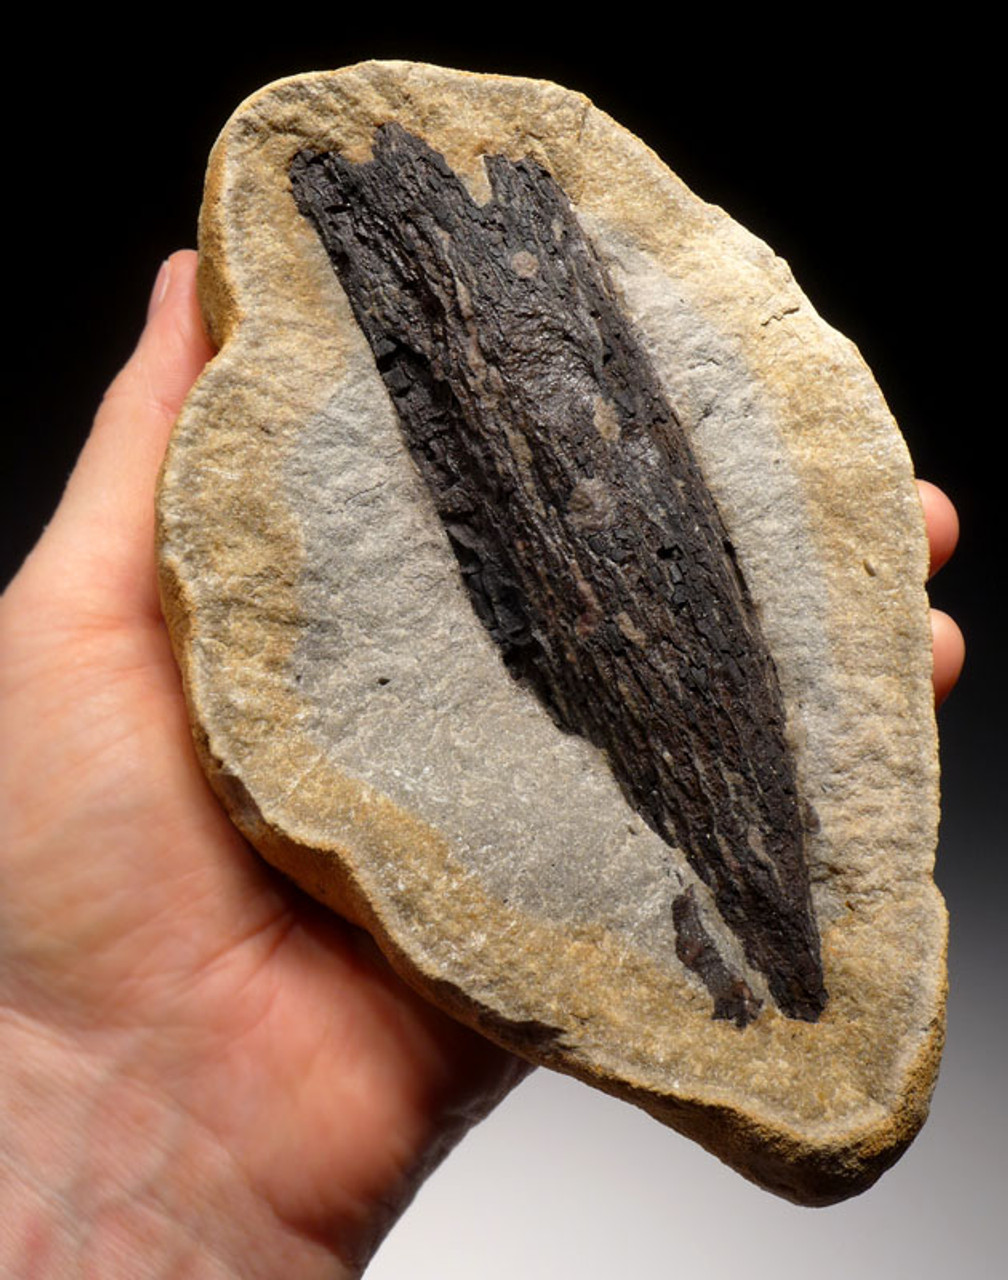 PL091 - RARE SIZE AND COLOR   LARGE FOSSIL WOOD IN CONCRETION FROM THE OLIGOCENE OF BAD KREUZNACH GERMANY